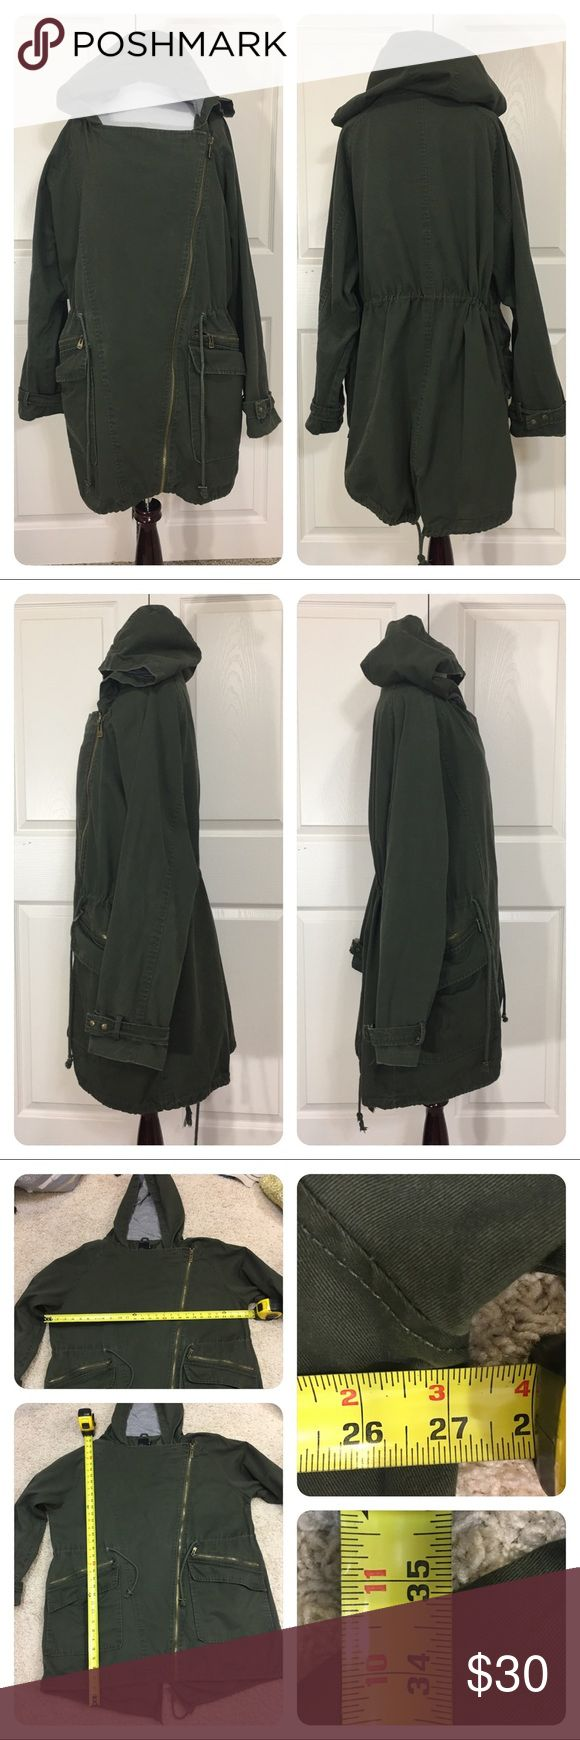 ASOS Curve army green Anorak Great army green Anorak from ASOS Curve. Off center zipper. Tie at waist. Light wear. Great layering options. ASOS Curve Jackets & Coats